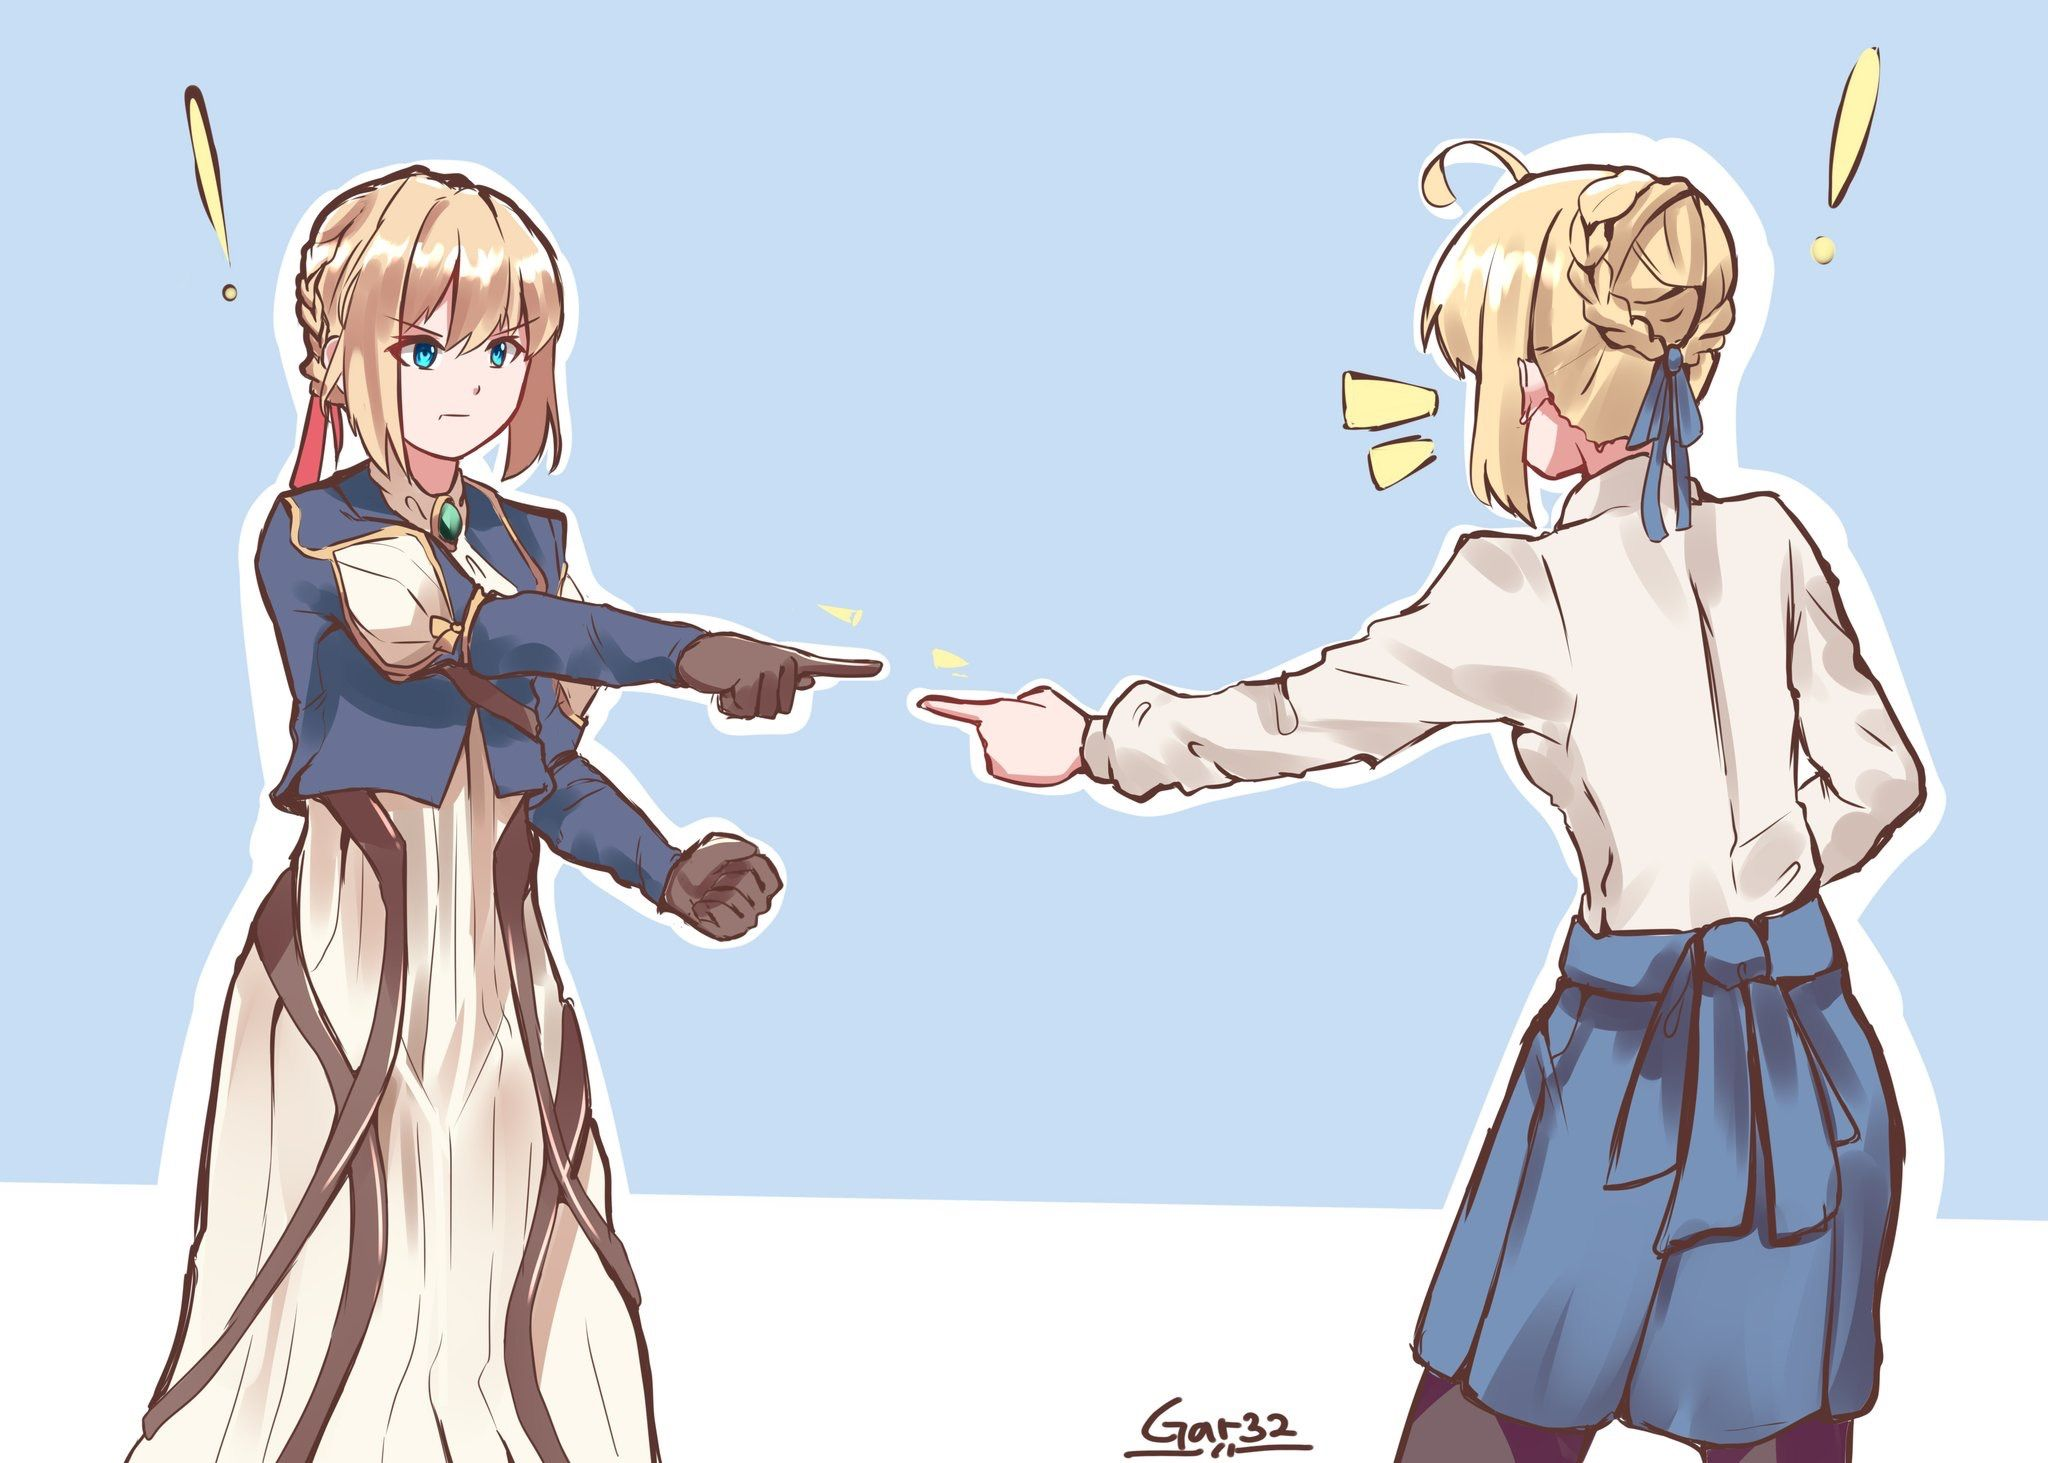 Anime 2048x1463 Fate/Stay Night Violet Evergarden (anime) Saber Violet Evergarden anime girls crossover Fate Series